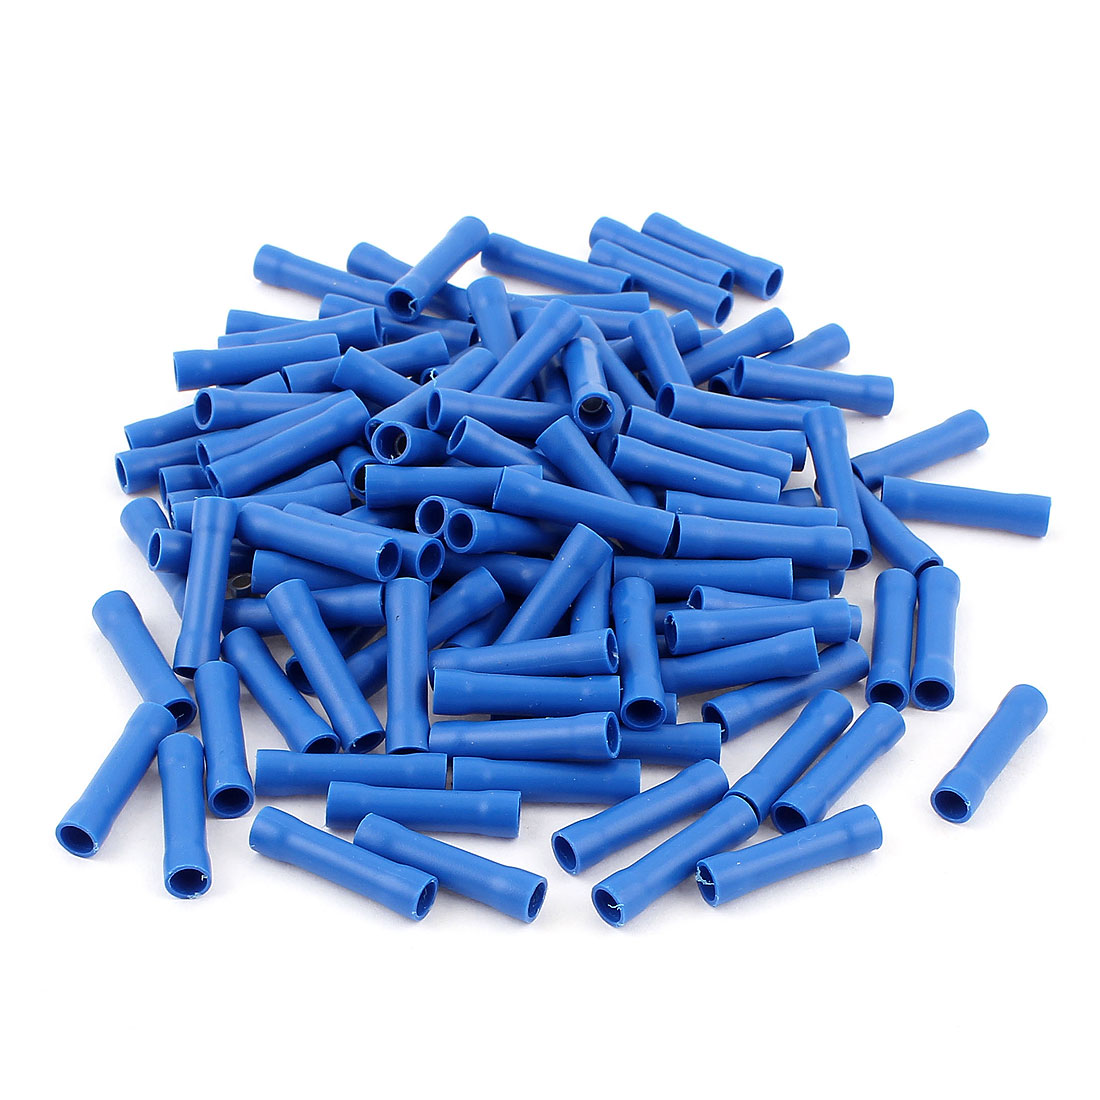 125 Pcs Dual Ends Blue Plastic Fully Insulated Female Crimp Wiring Terminal Cable Connector for AWG16-14 Wire